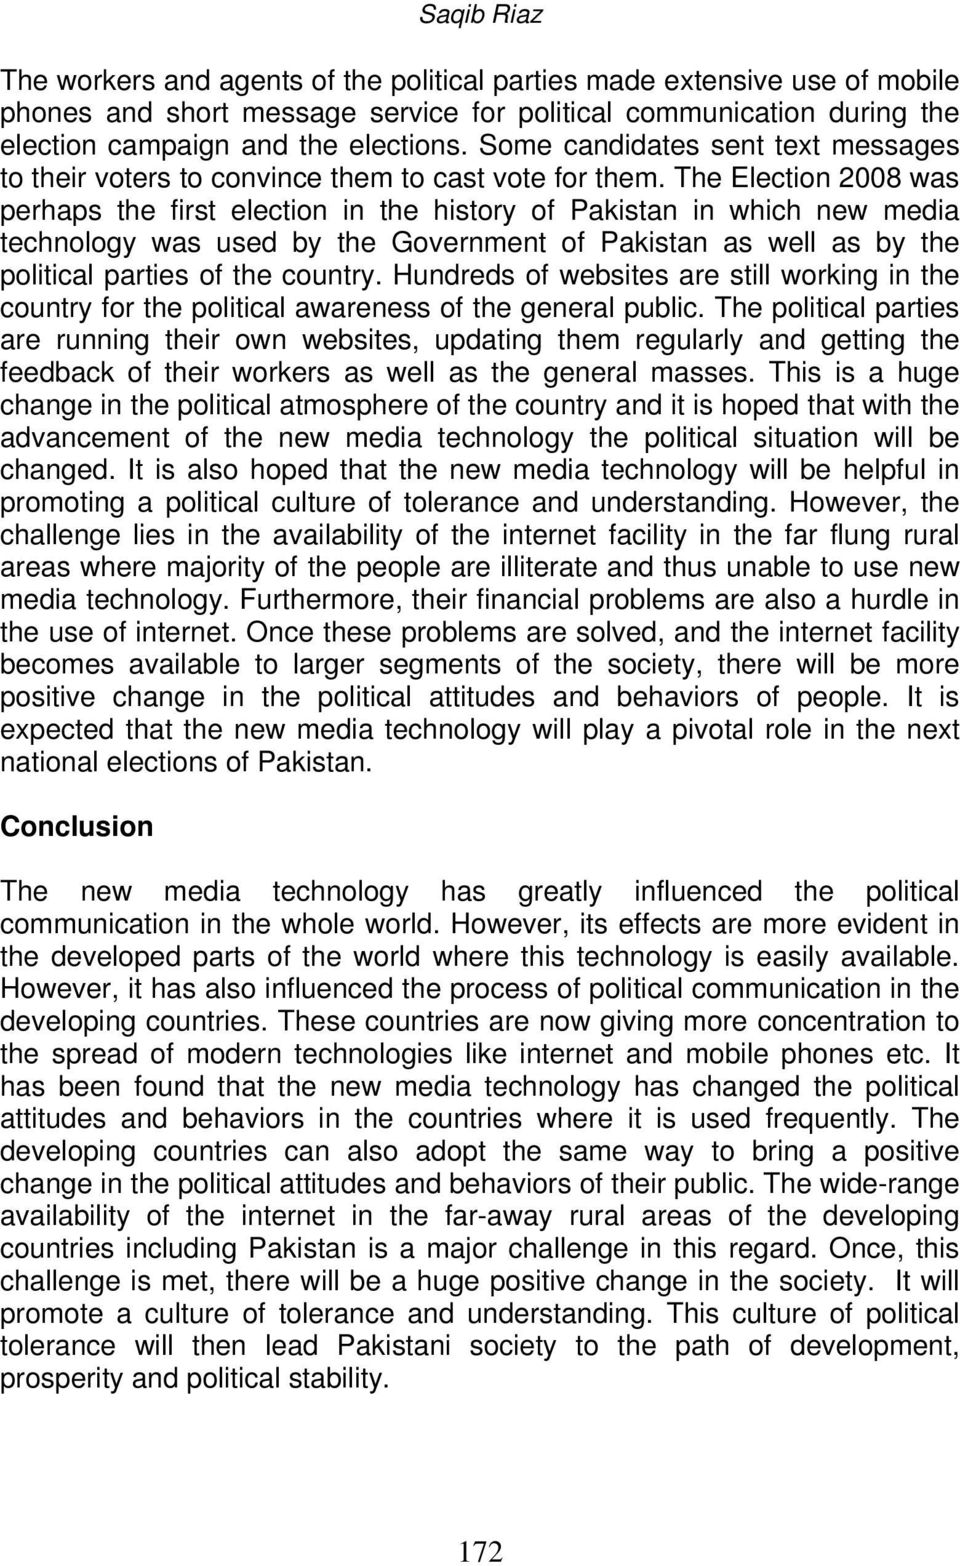 The Election 2008 was perhaps the first election in the history of Pakistan in which new media technology was used by the Government of Pakistan as well as by the political parties of the country.